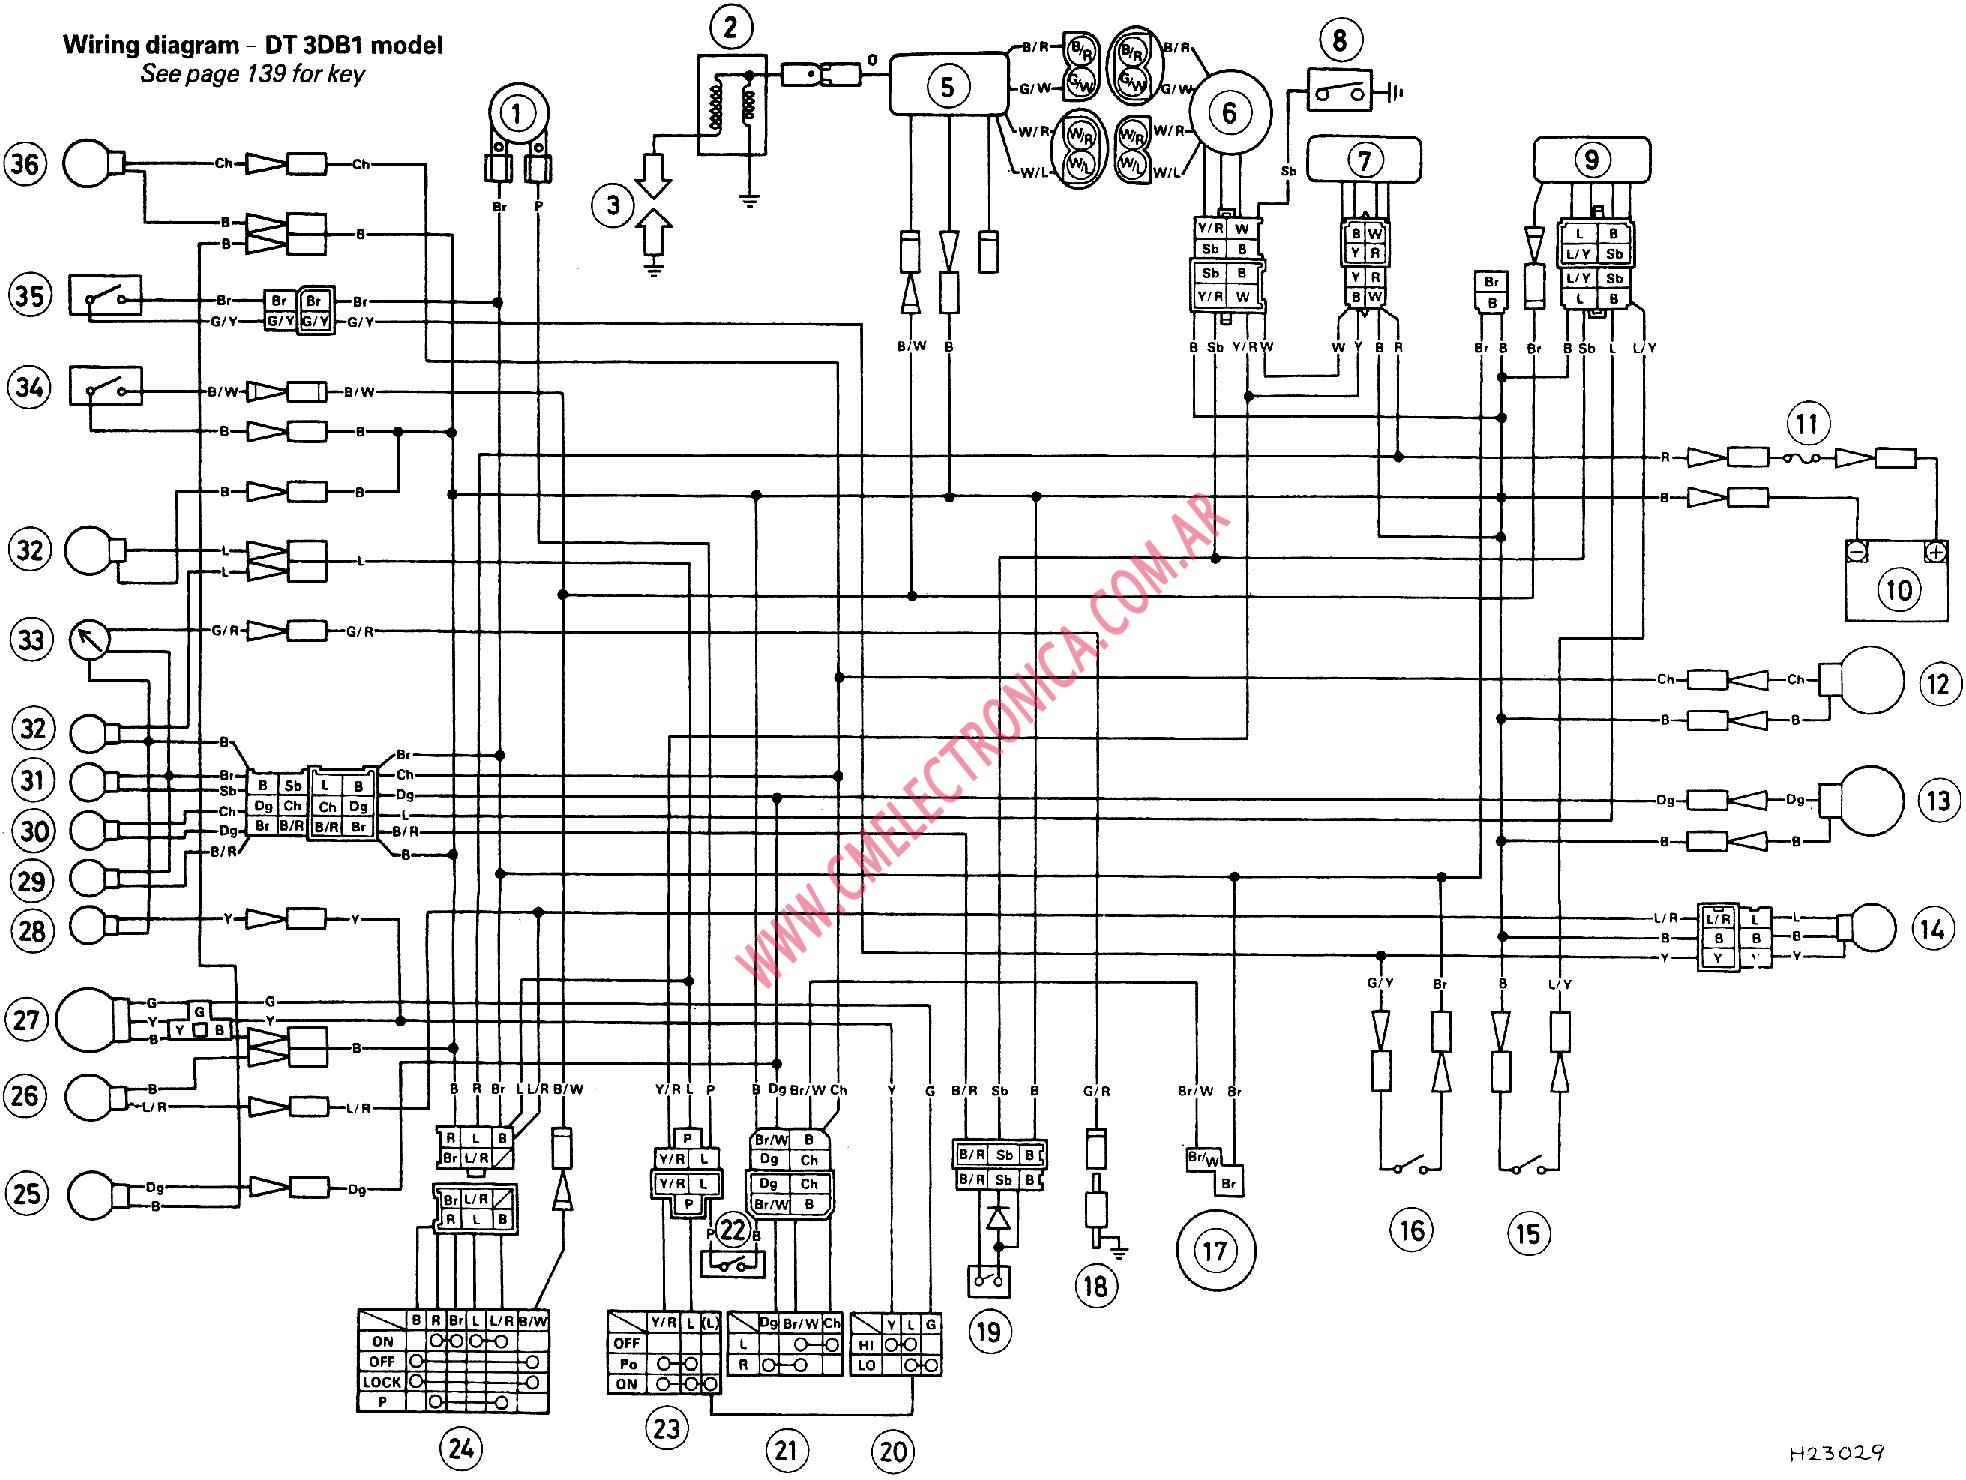 free yamaha atv wiring diagram yamaha xs wiring diagram - auto electrical wiring diagram yamaha zeal wiring diagram #7